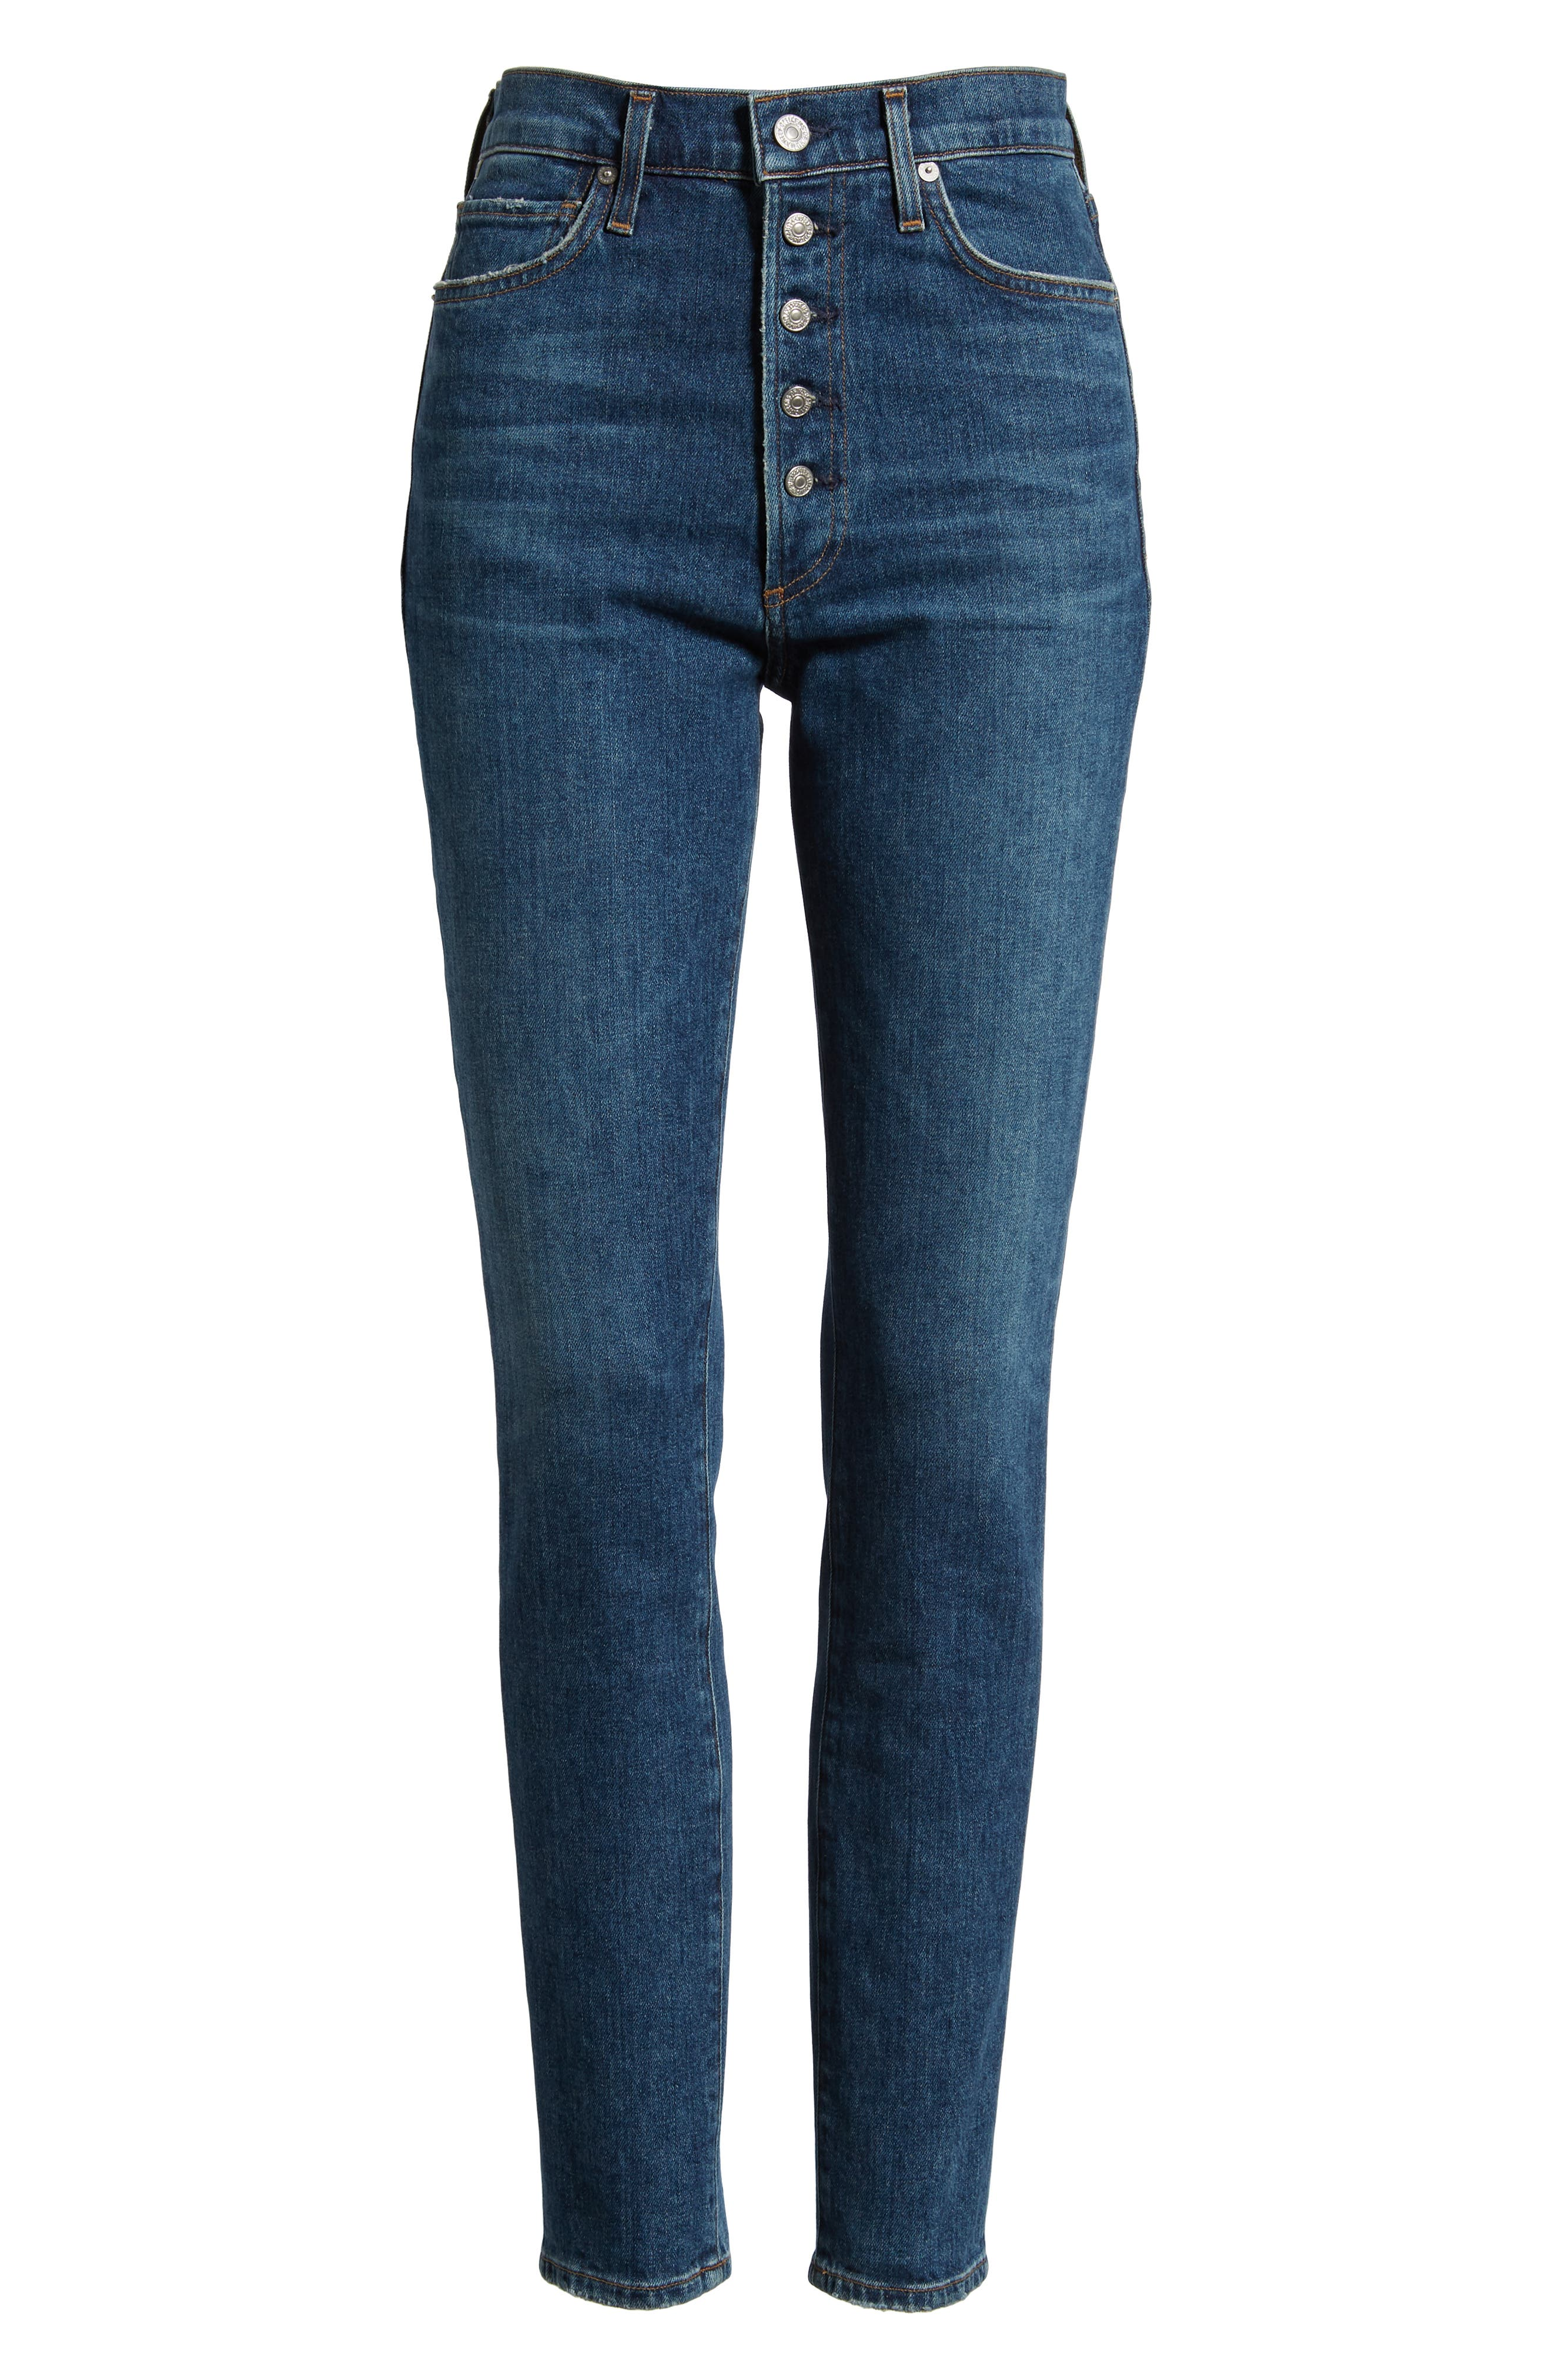 CITIZENS OF HUMANITY, Olivia High Waist Slim Jeans, Alternate thumbnail 7, color, CIRCA